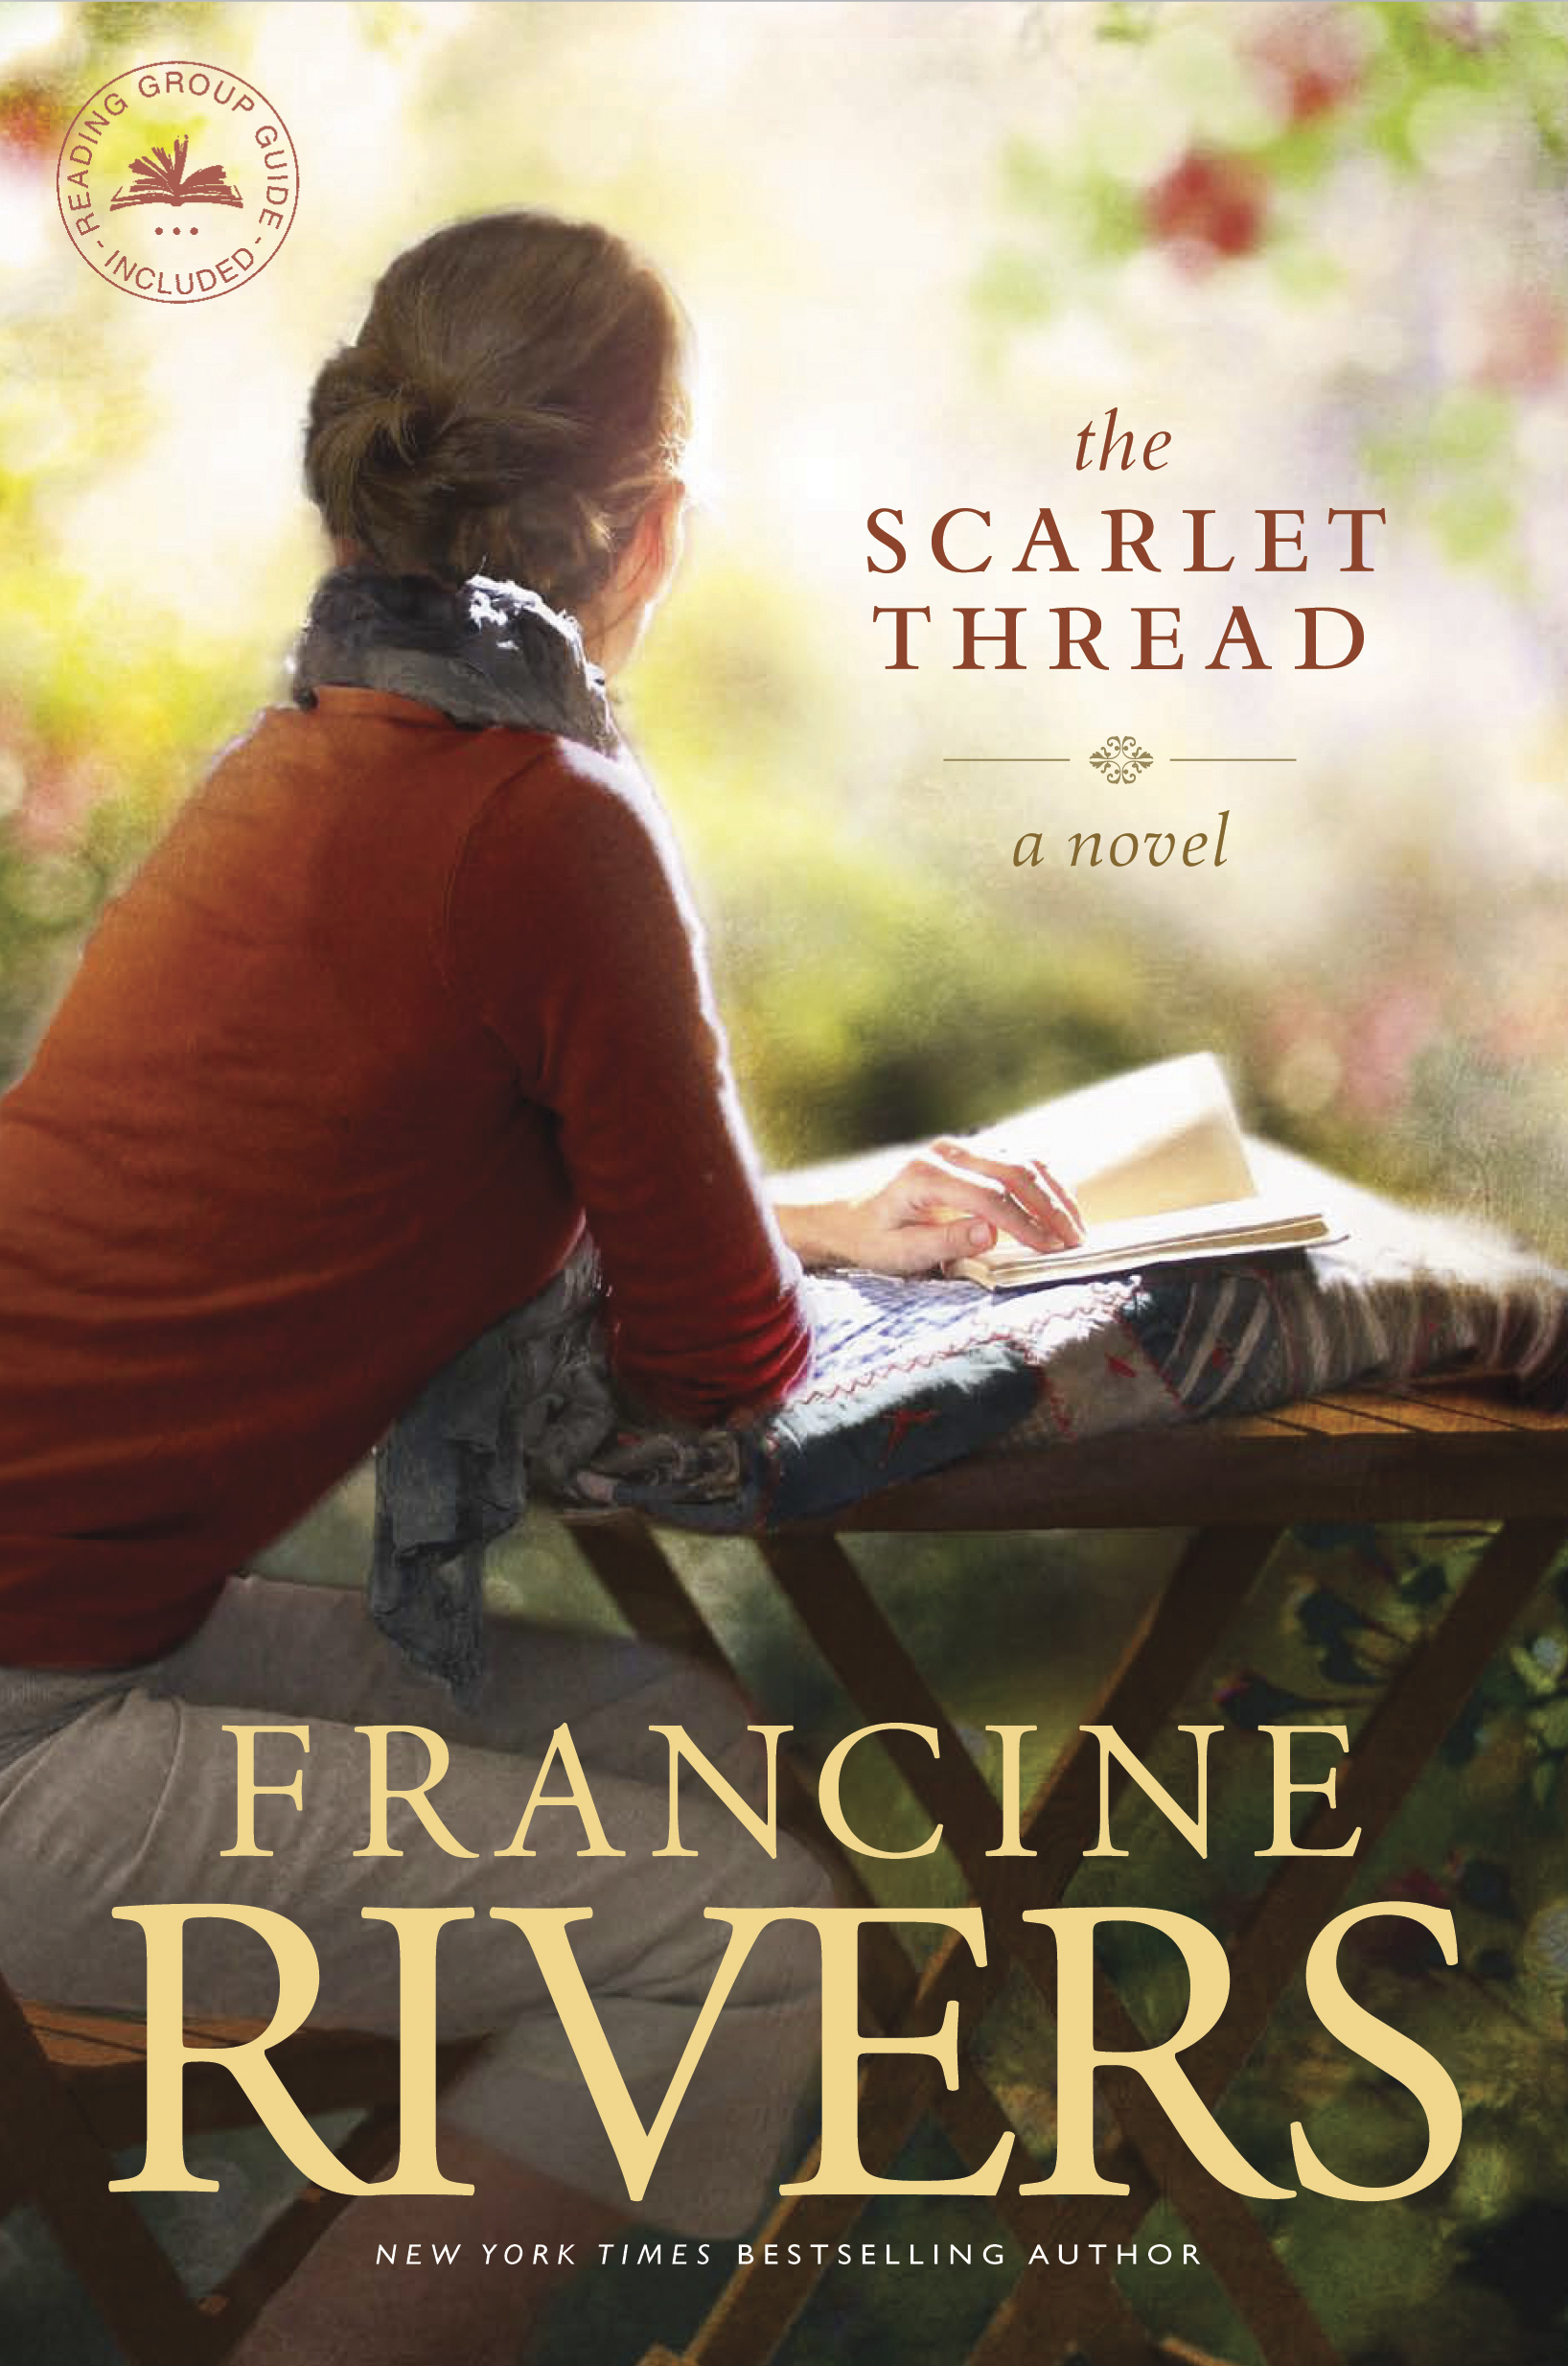 The Scarlet Thread [electronic resource]